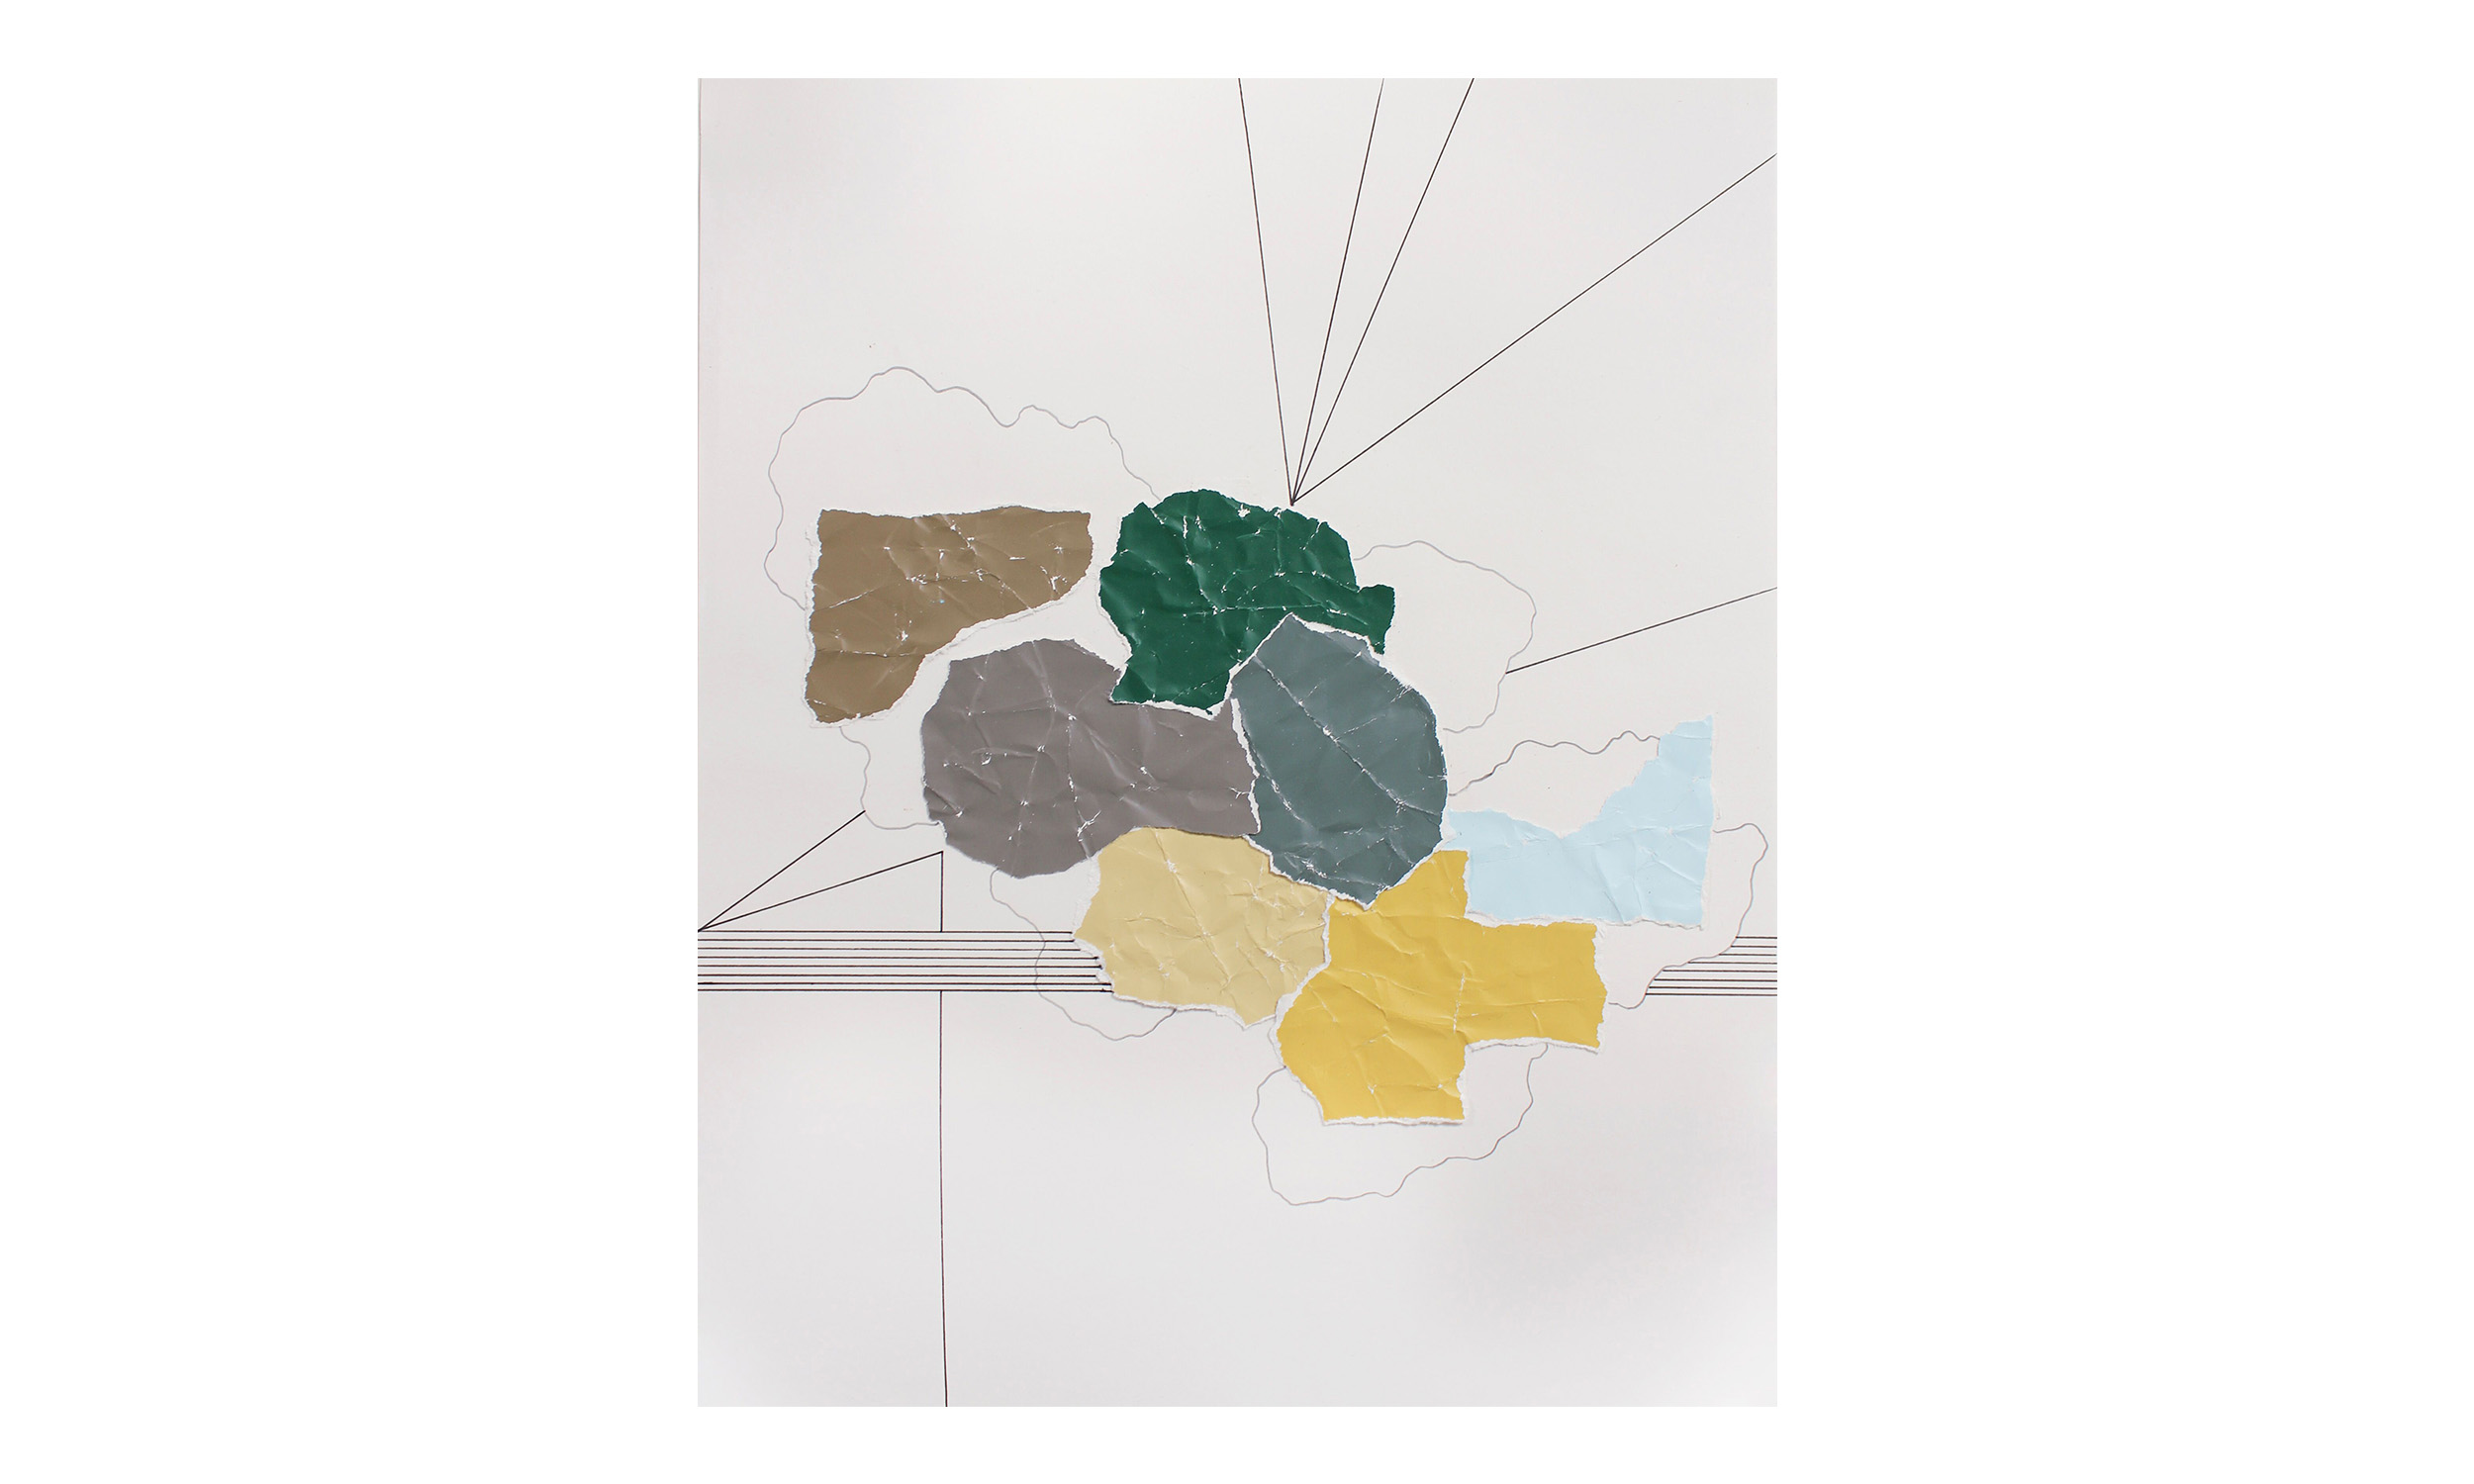 Imaginary Maps 12 , paint chips on paper, pen, pencil, powdered graphite, 11 x 14 inches, unframed, $200    Contact us for purchase